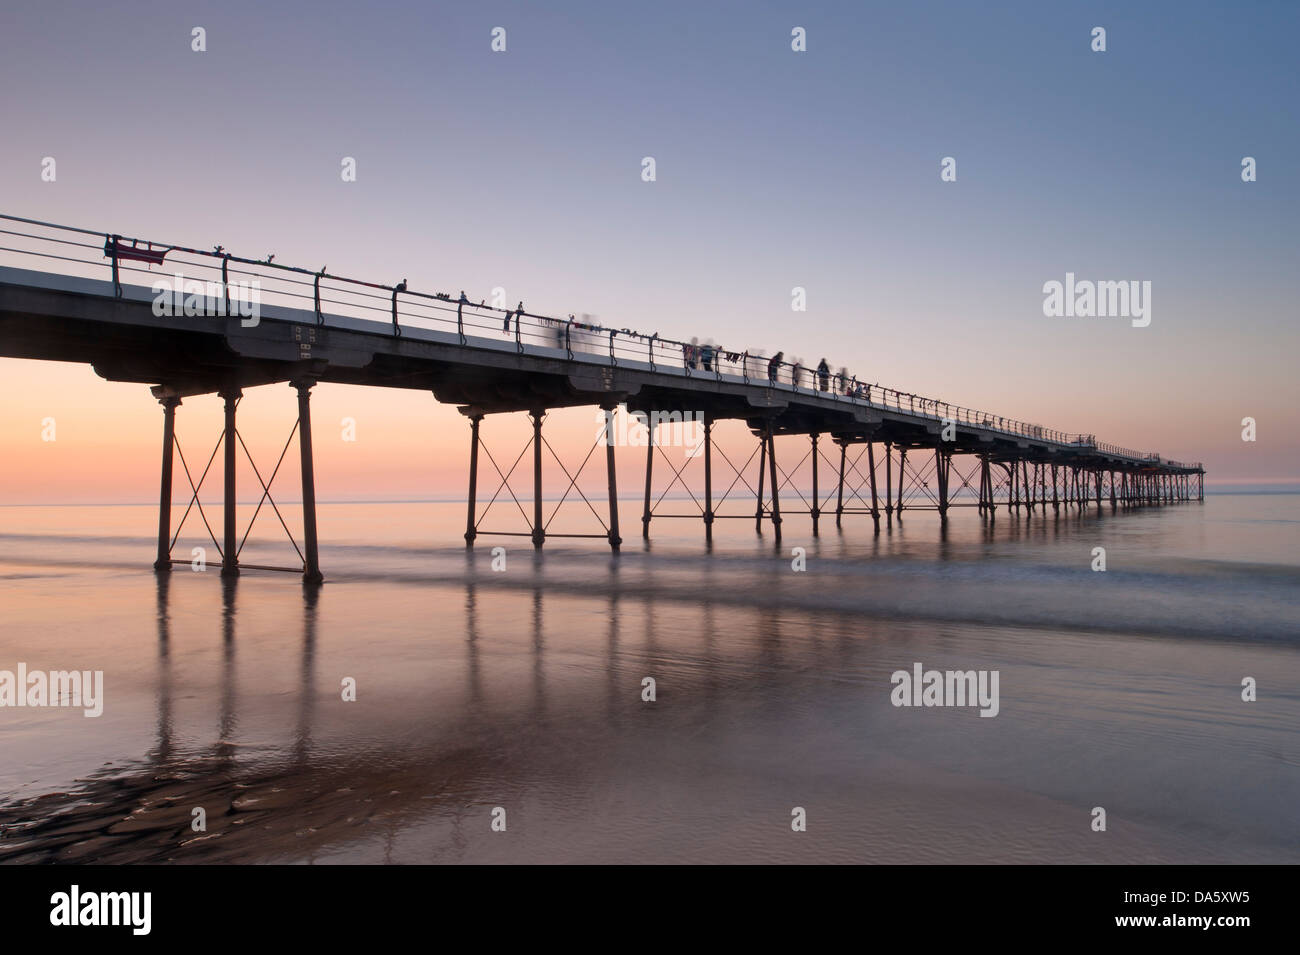 Under colourful summer sunset sky, view from sandy beach of people walking on historic seaside pier over calm sea - Stock Image